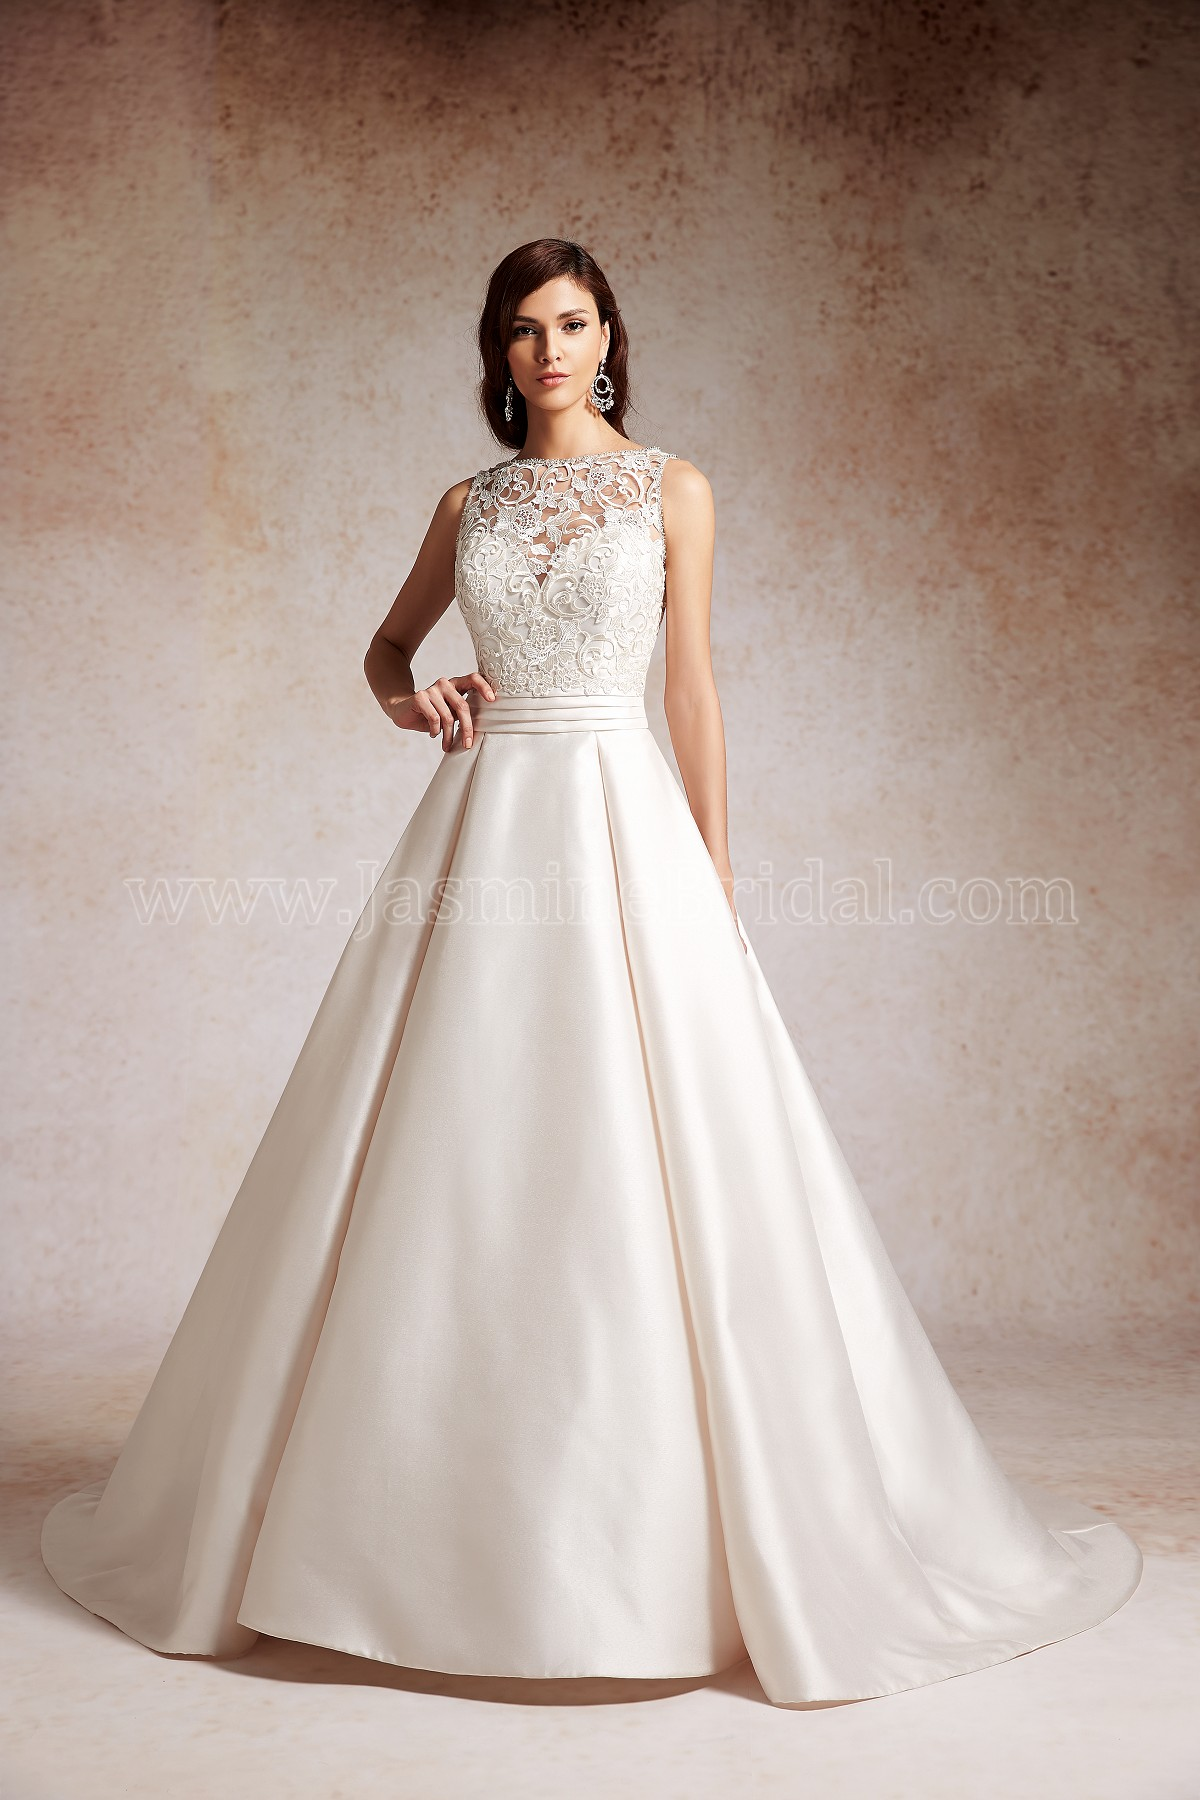 7796163e9d8 T152065 Illusion Neckline Encore Ball Gown Wedding Dress